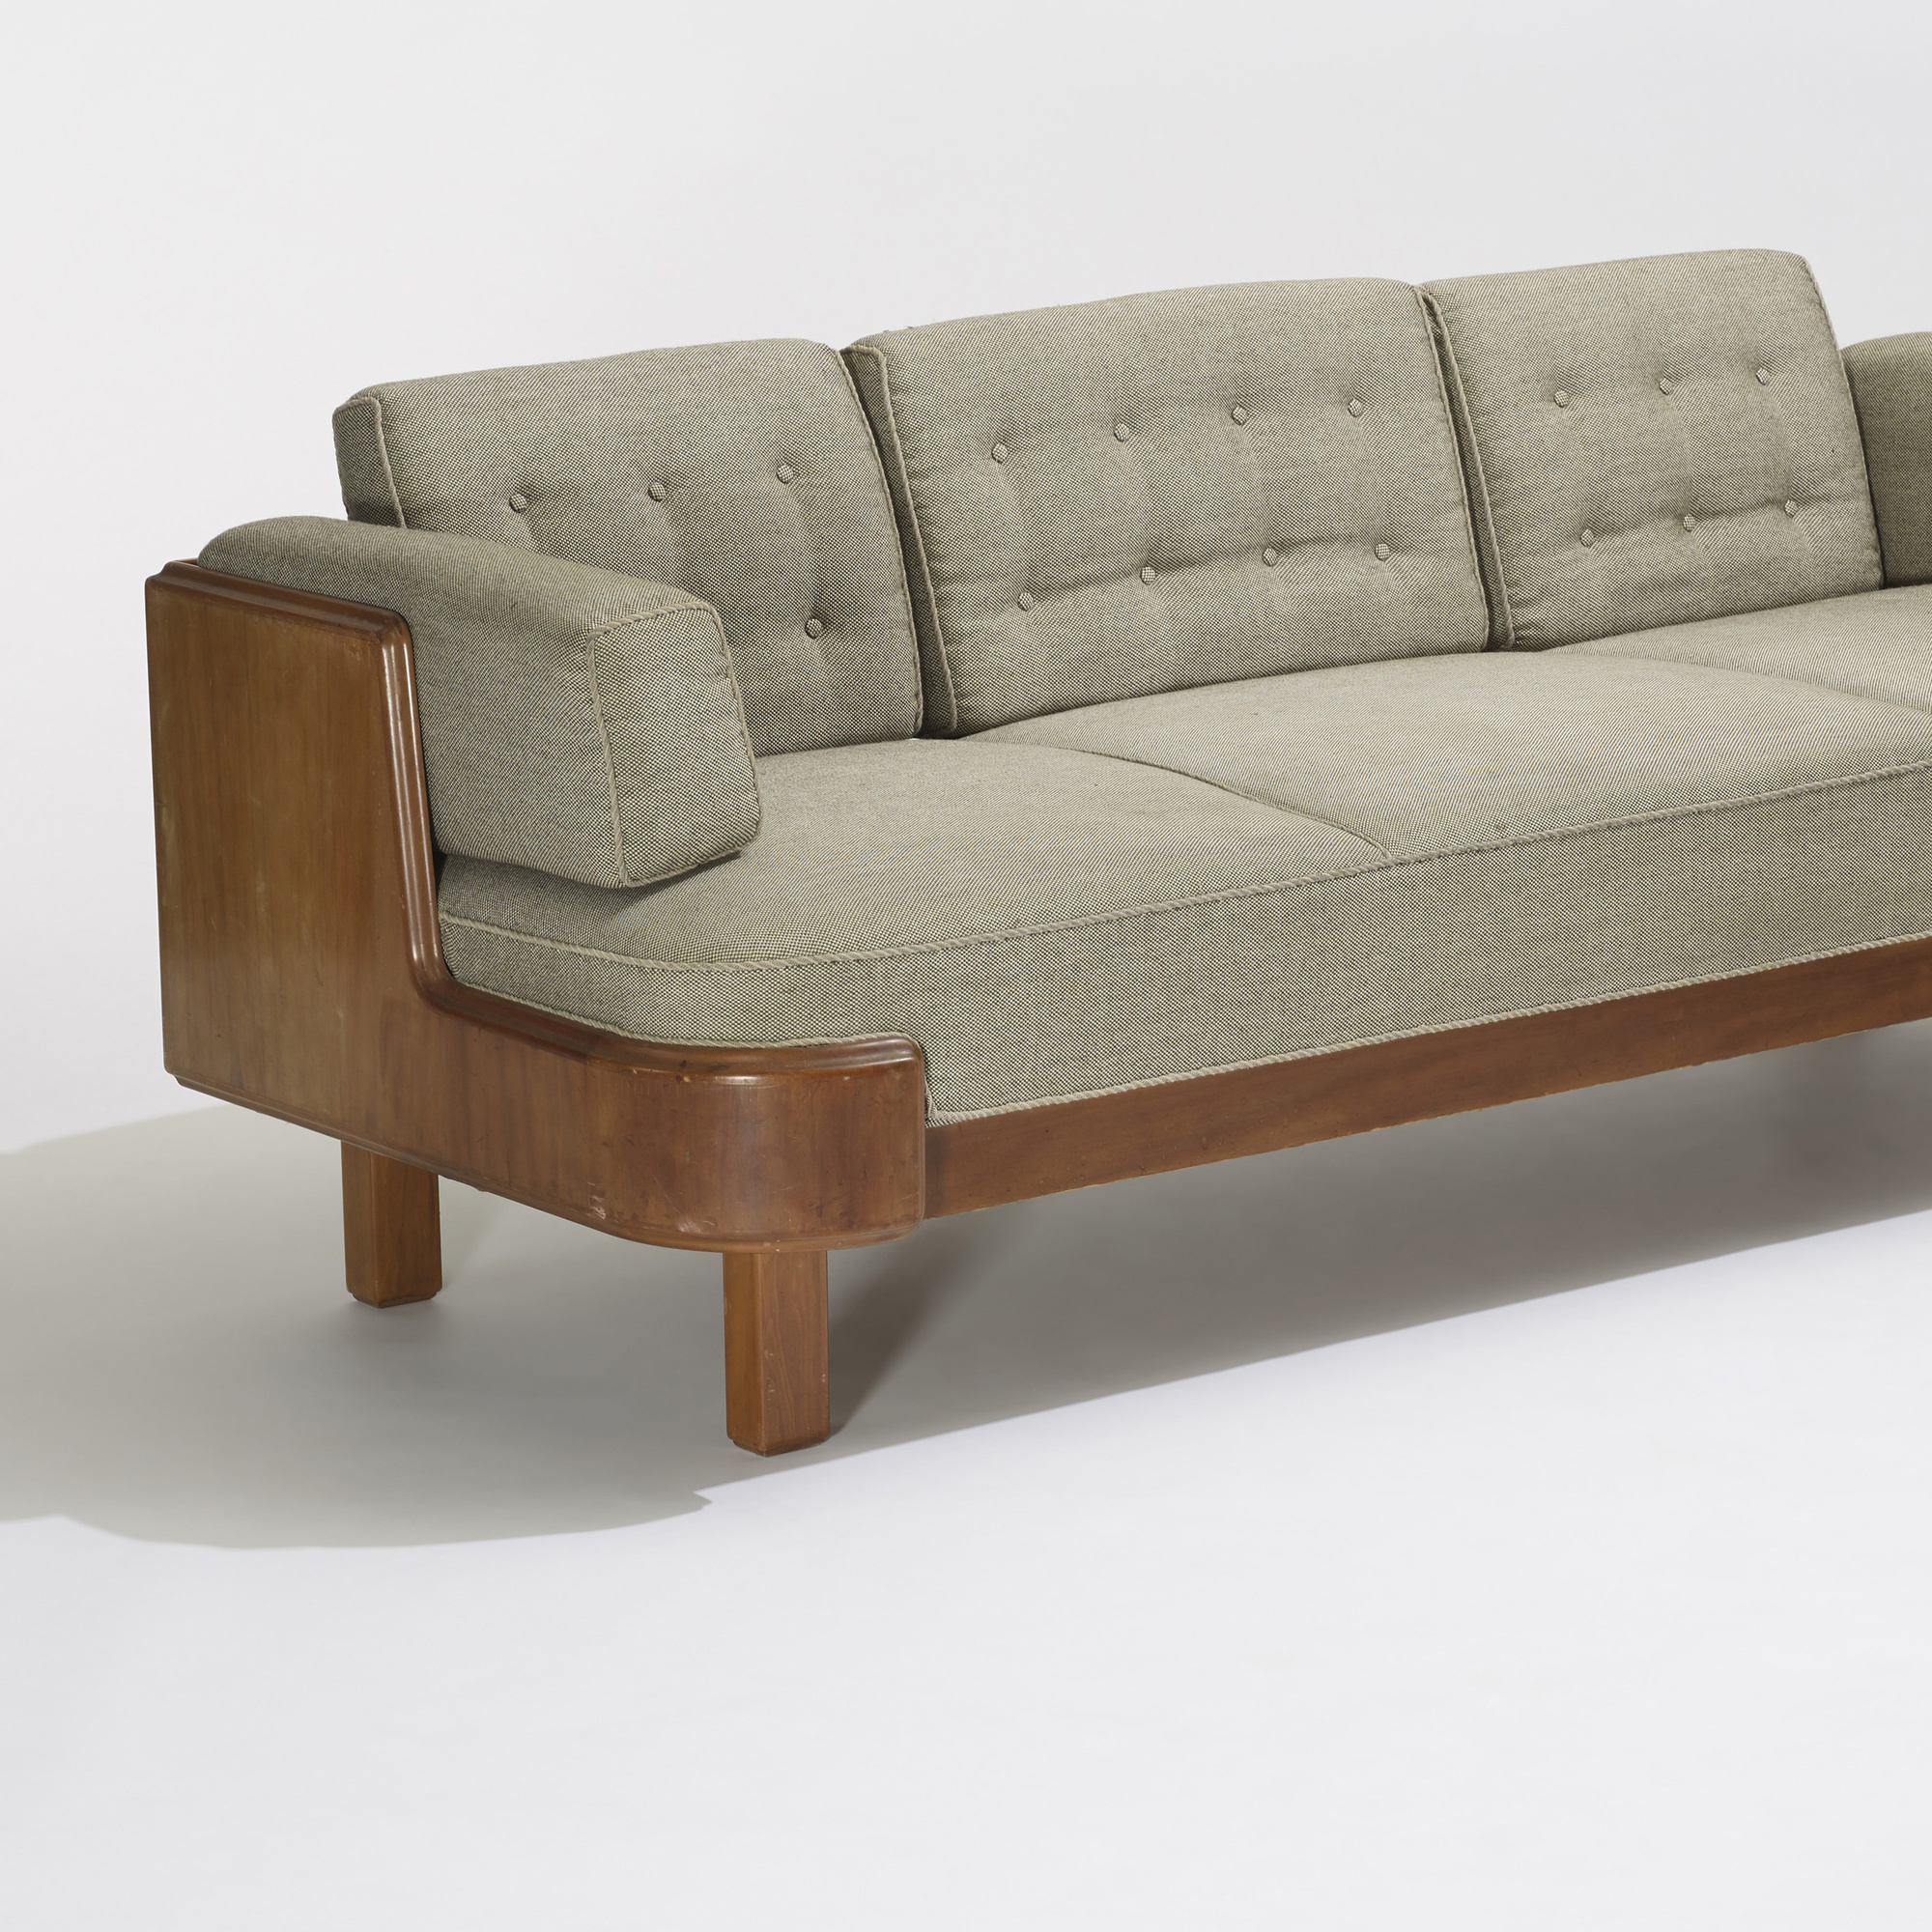 174 Frits Schlegel custom sofa Scandinavian Design 30